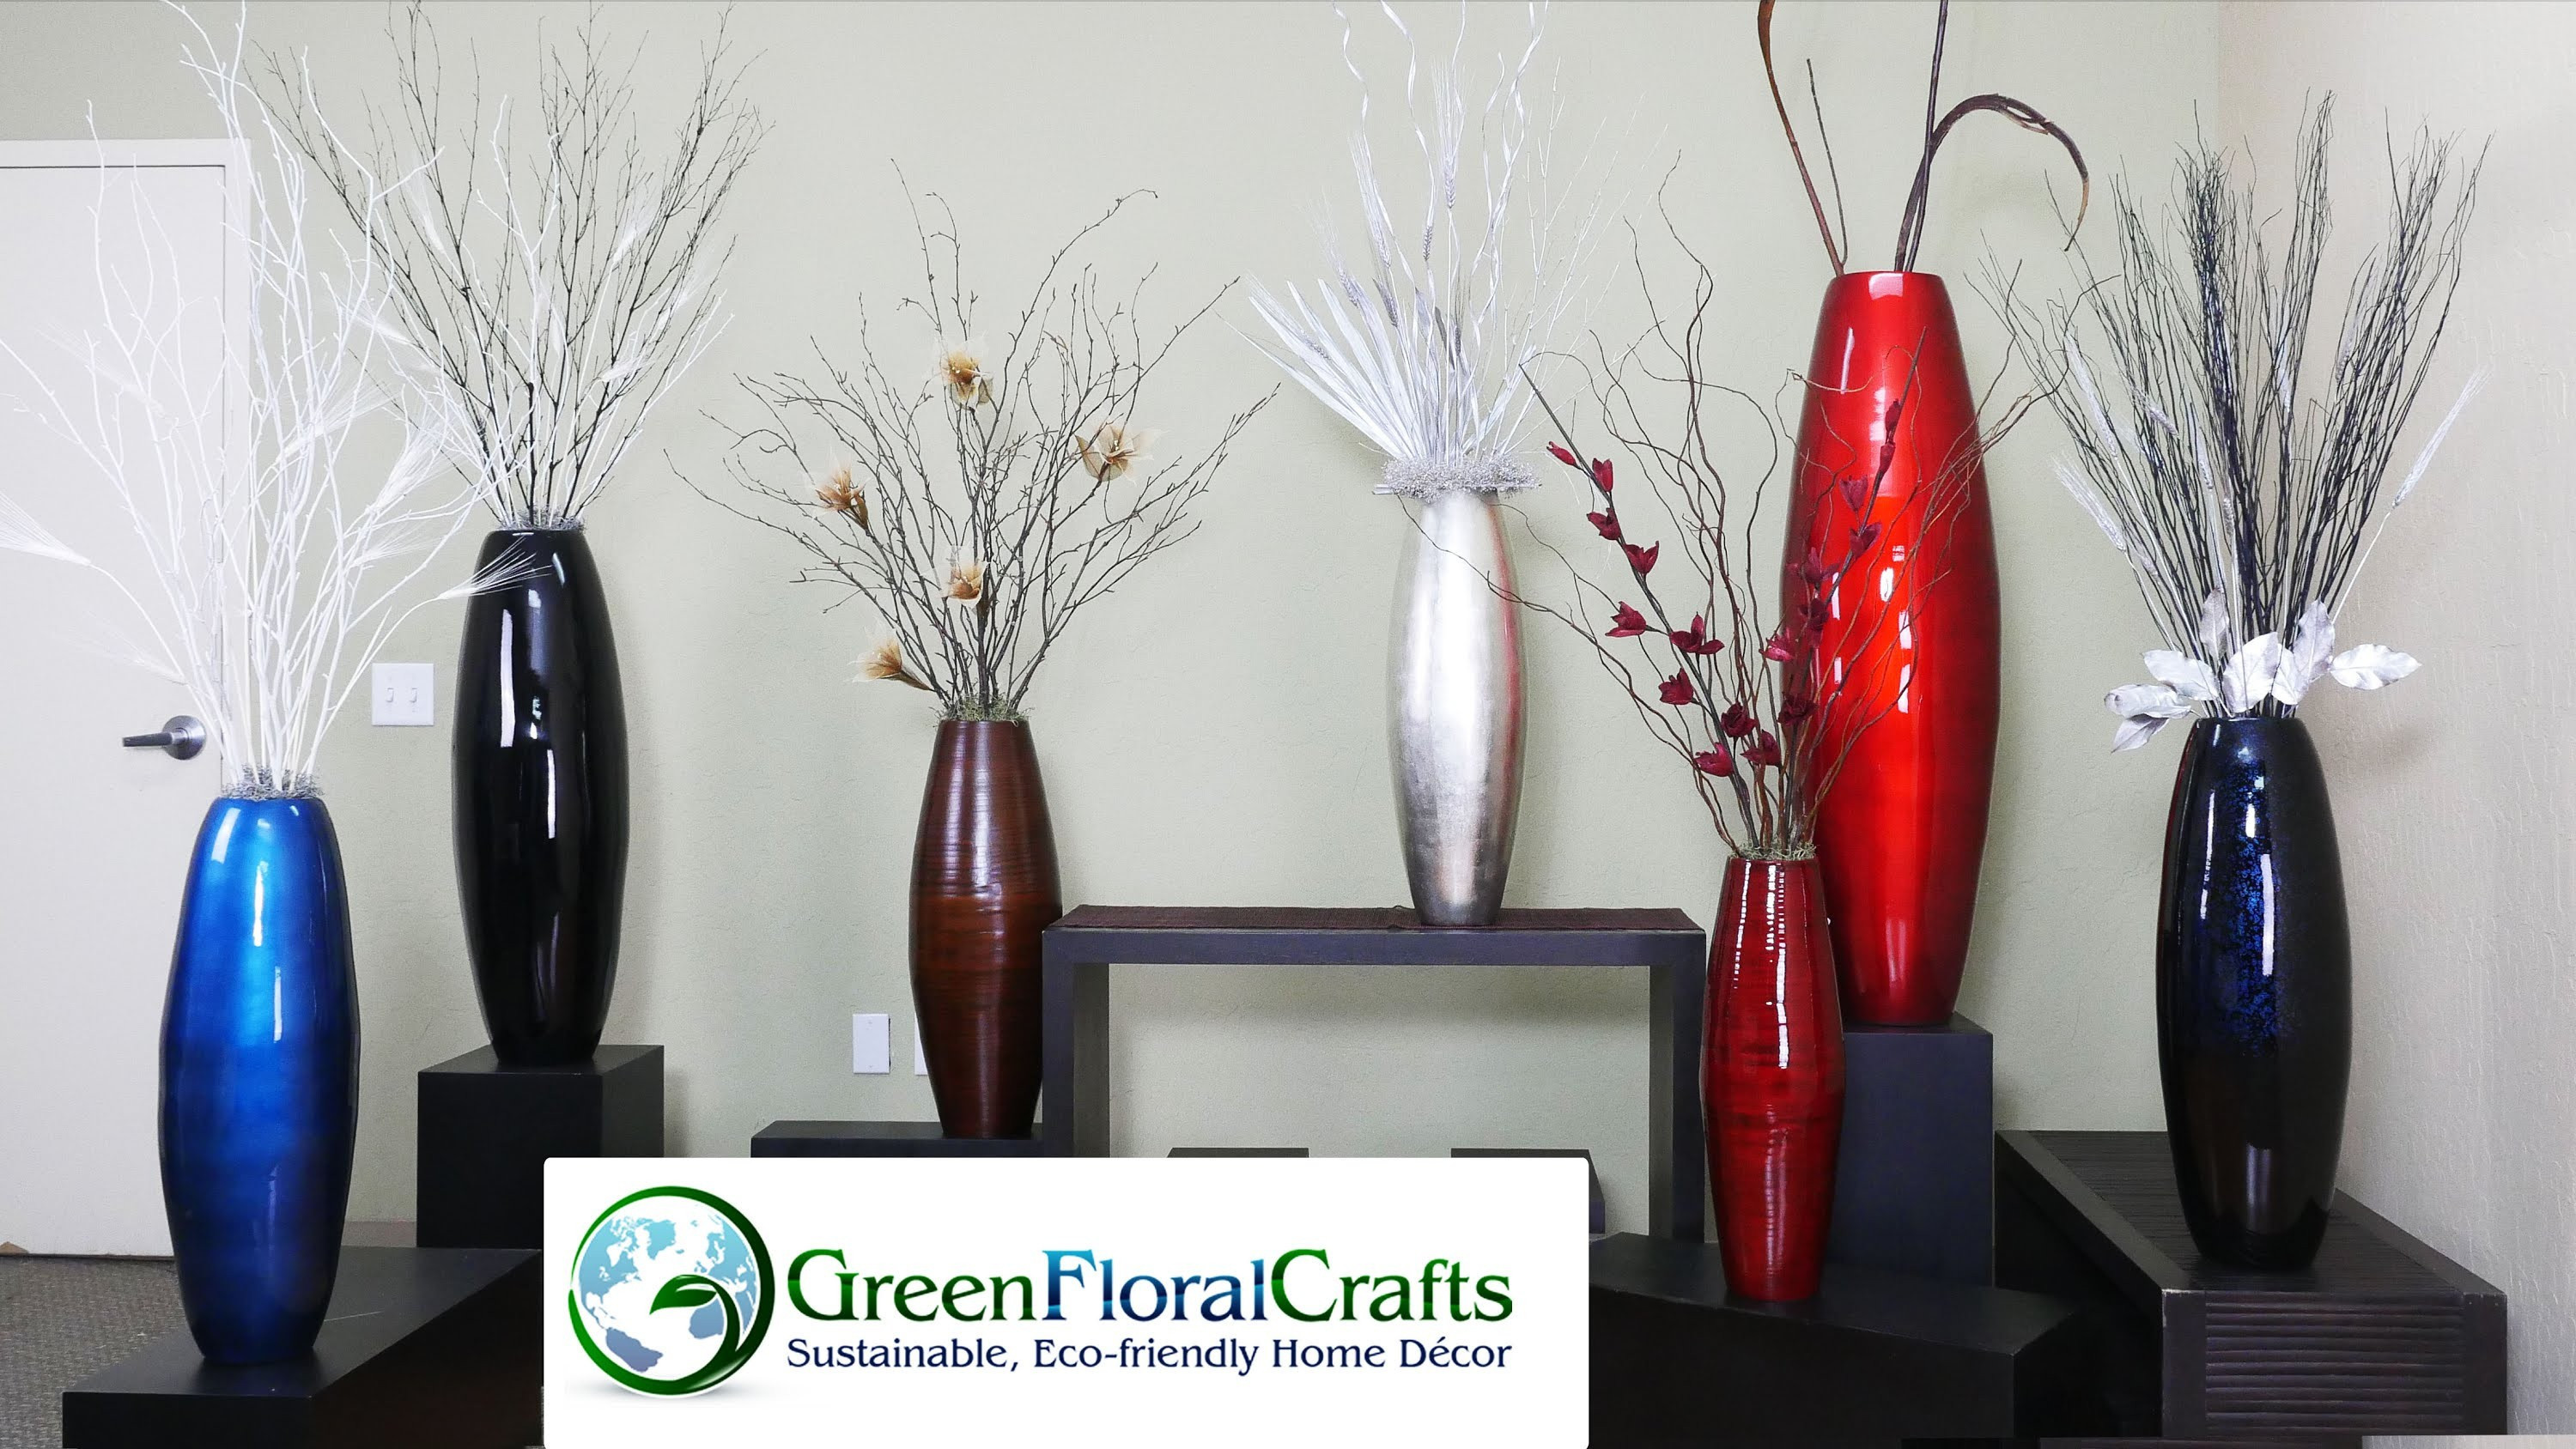 cheap glass hurricane vases of decorating ideas for tall vases awesome h vases giant floor vase i inside decorating ideas for tall vases best of decoration ideas sweet dining room using cylinder extra tall